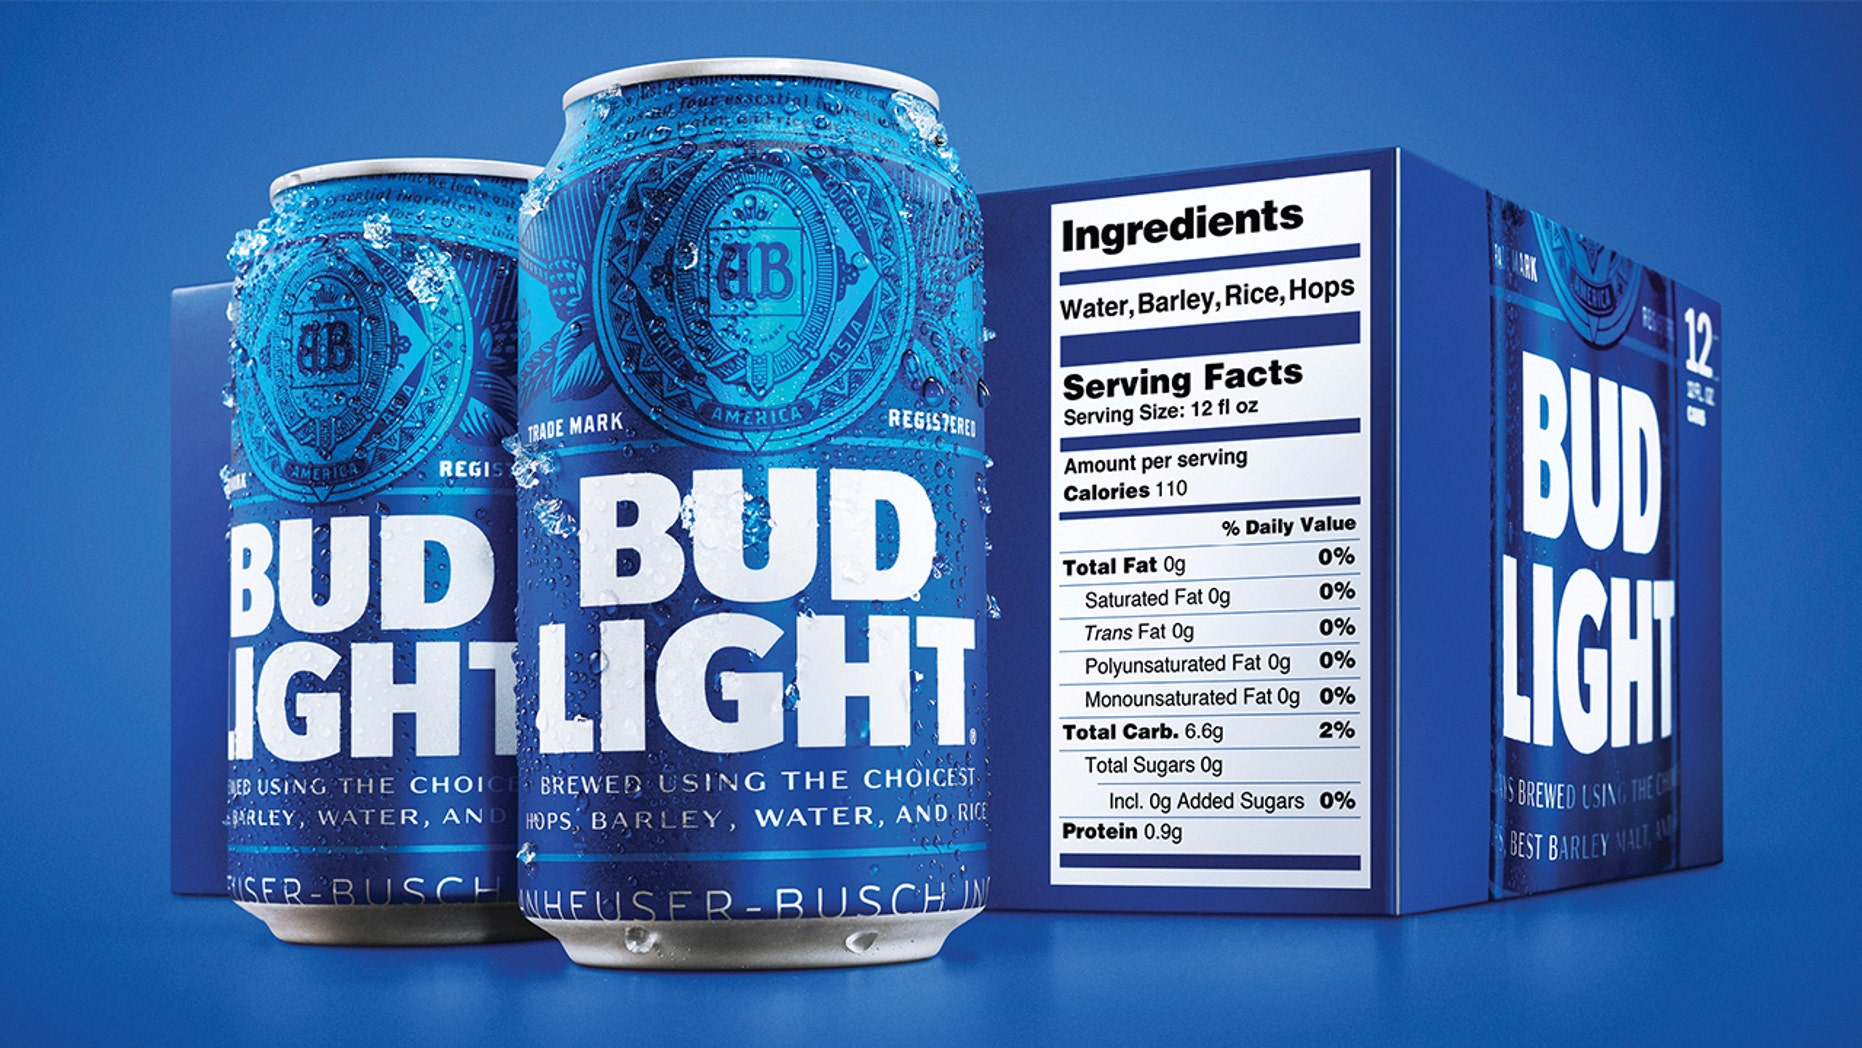 Bud Light uses Dilly Dilly King to promote ingredient list on packaging